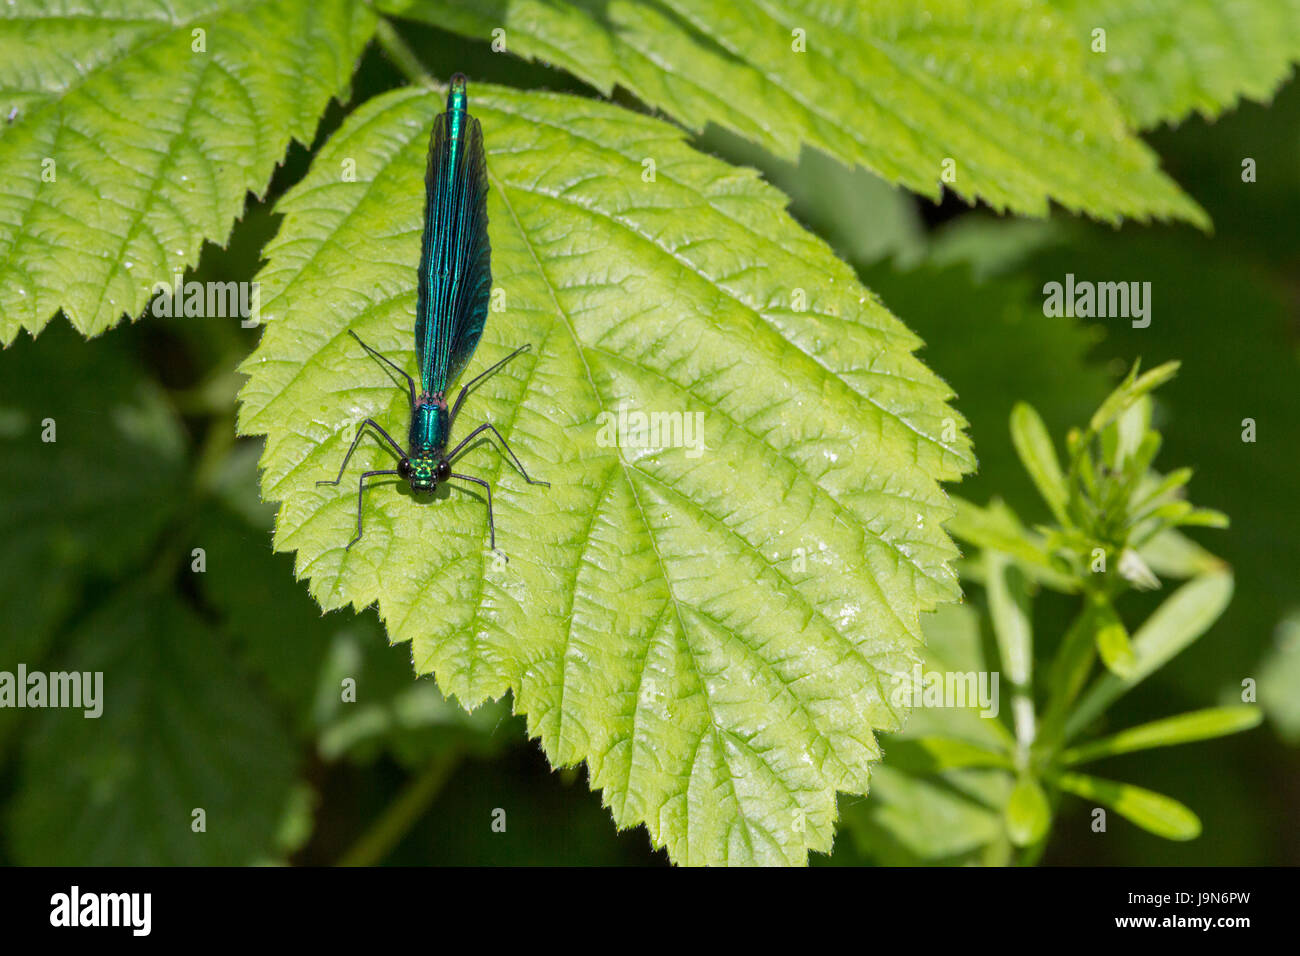 Beautiful Demoiselle Calopteryx Virgo alighted on foilage showing iridescent shiny colours and details. Compound - Stock Image